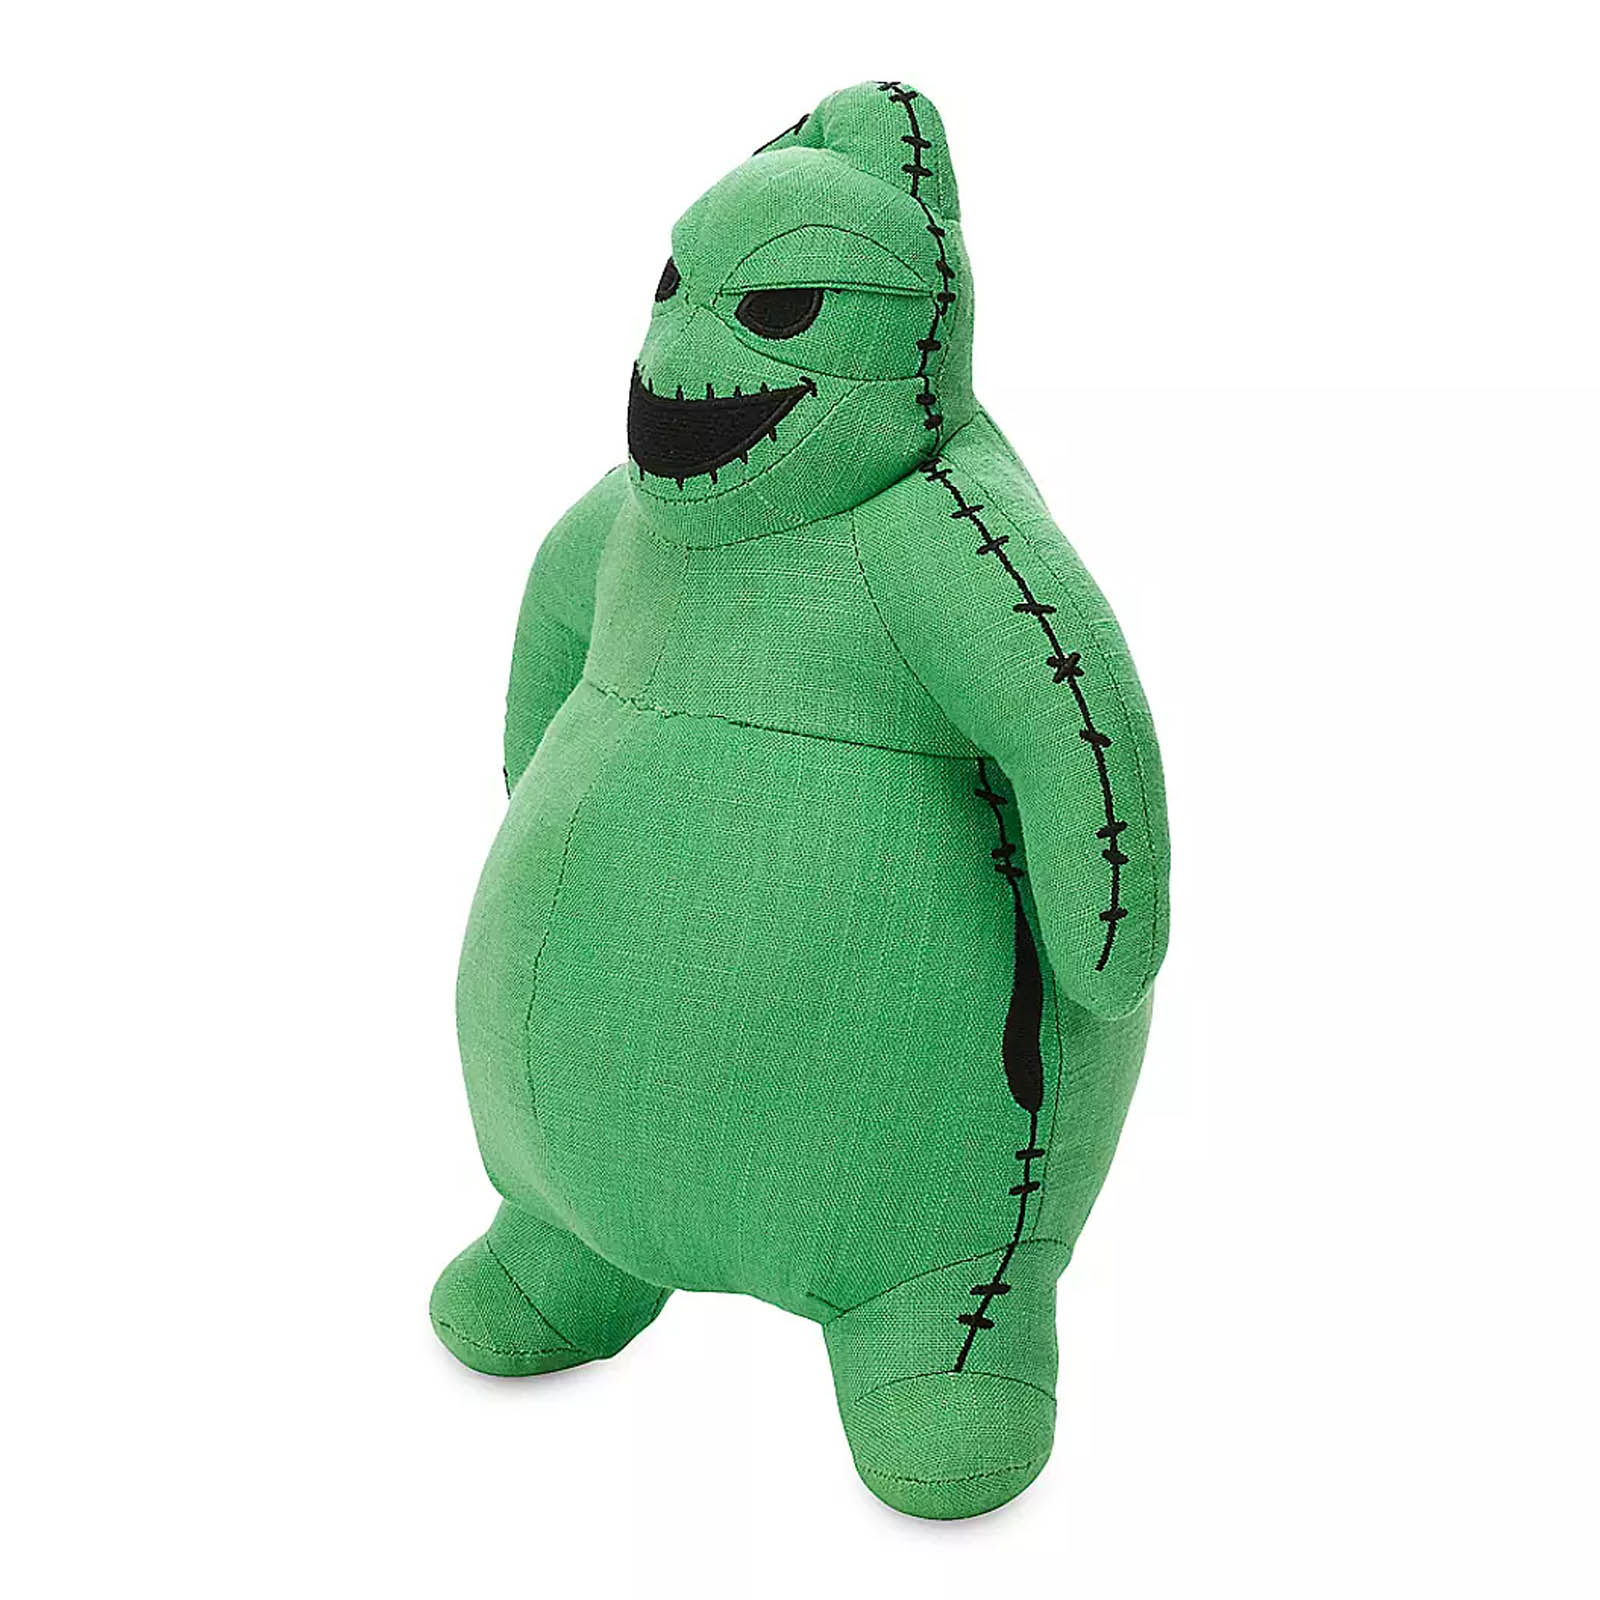 The Nightmare Before Christmas Oggie Boogie Plush Doll Soft Toy